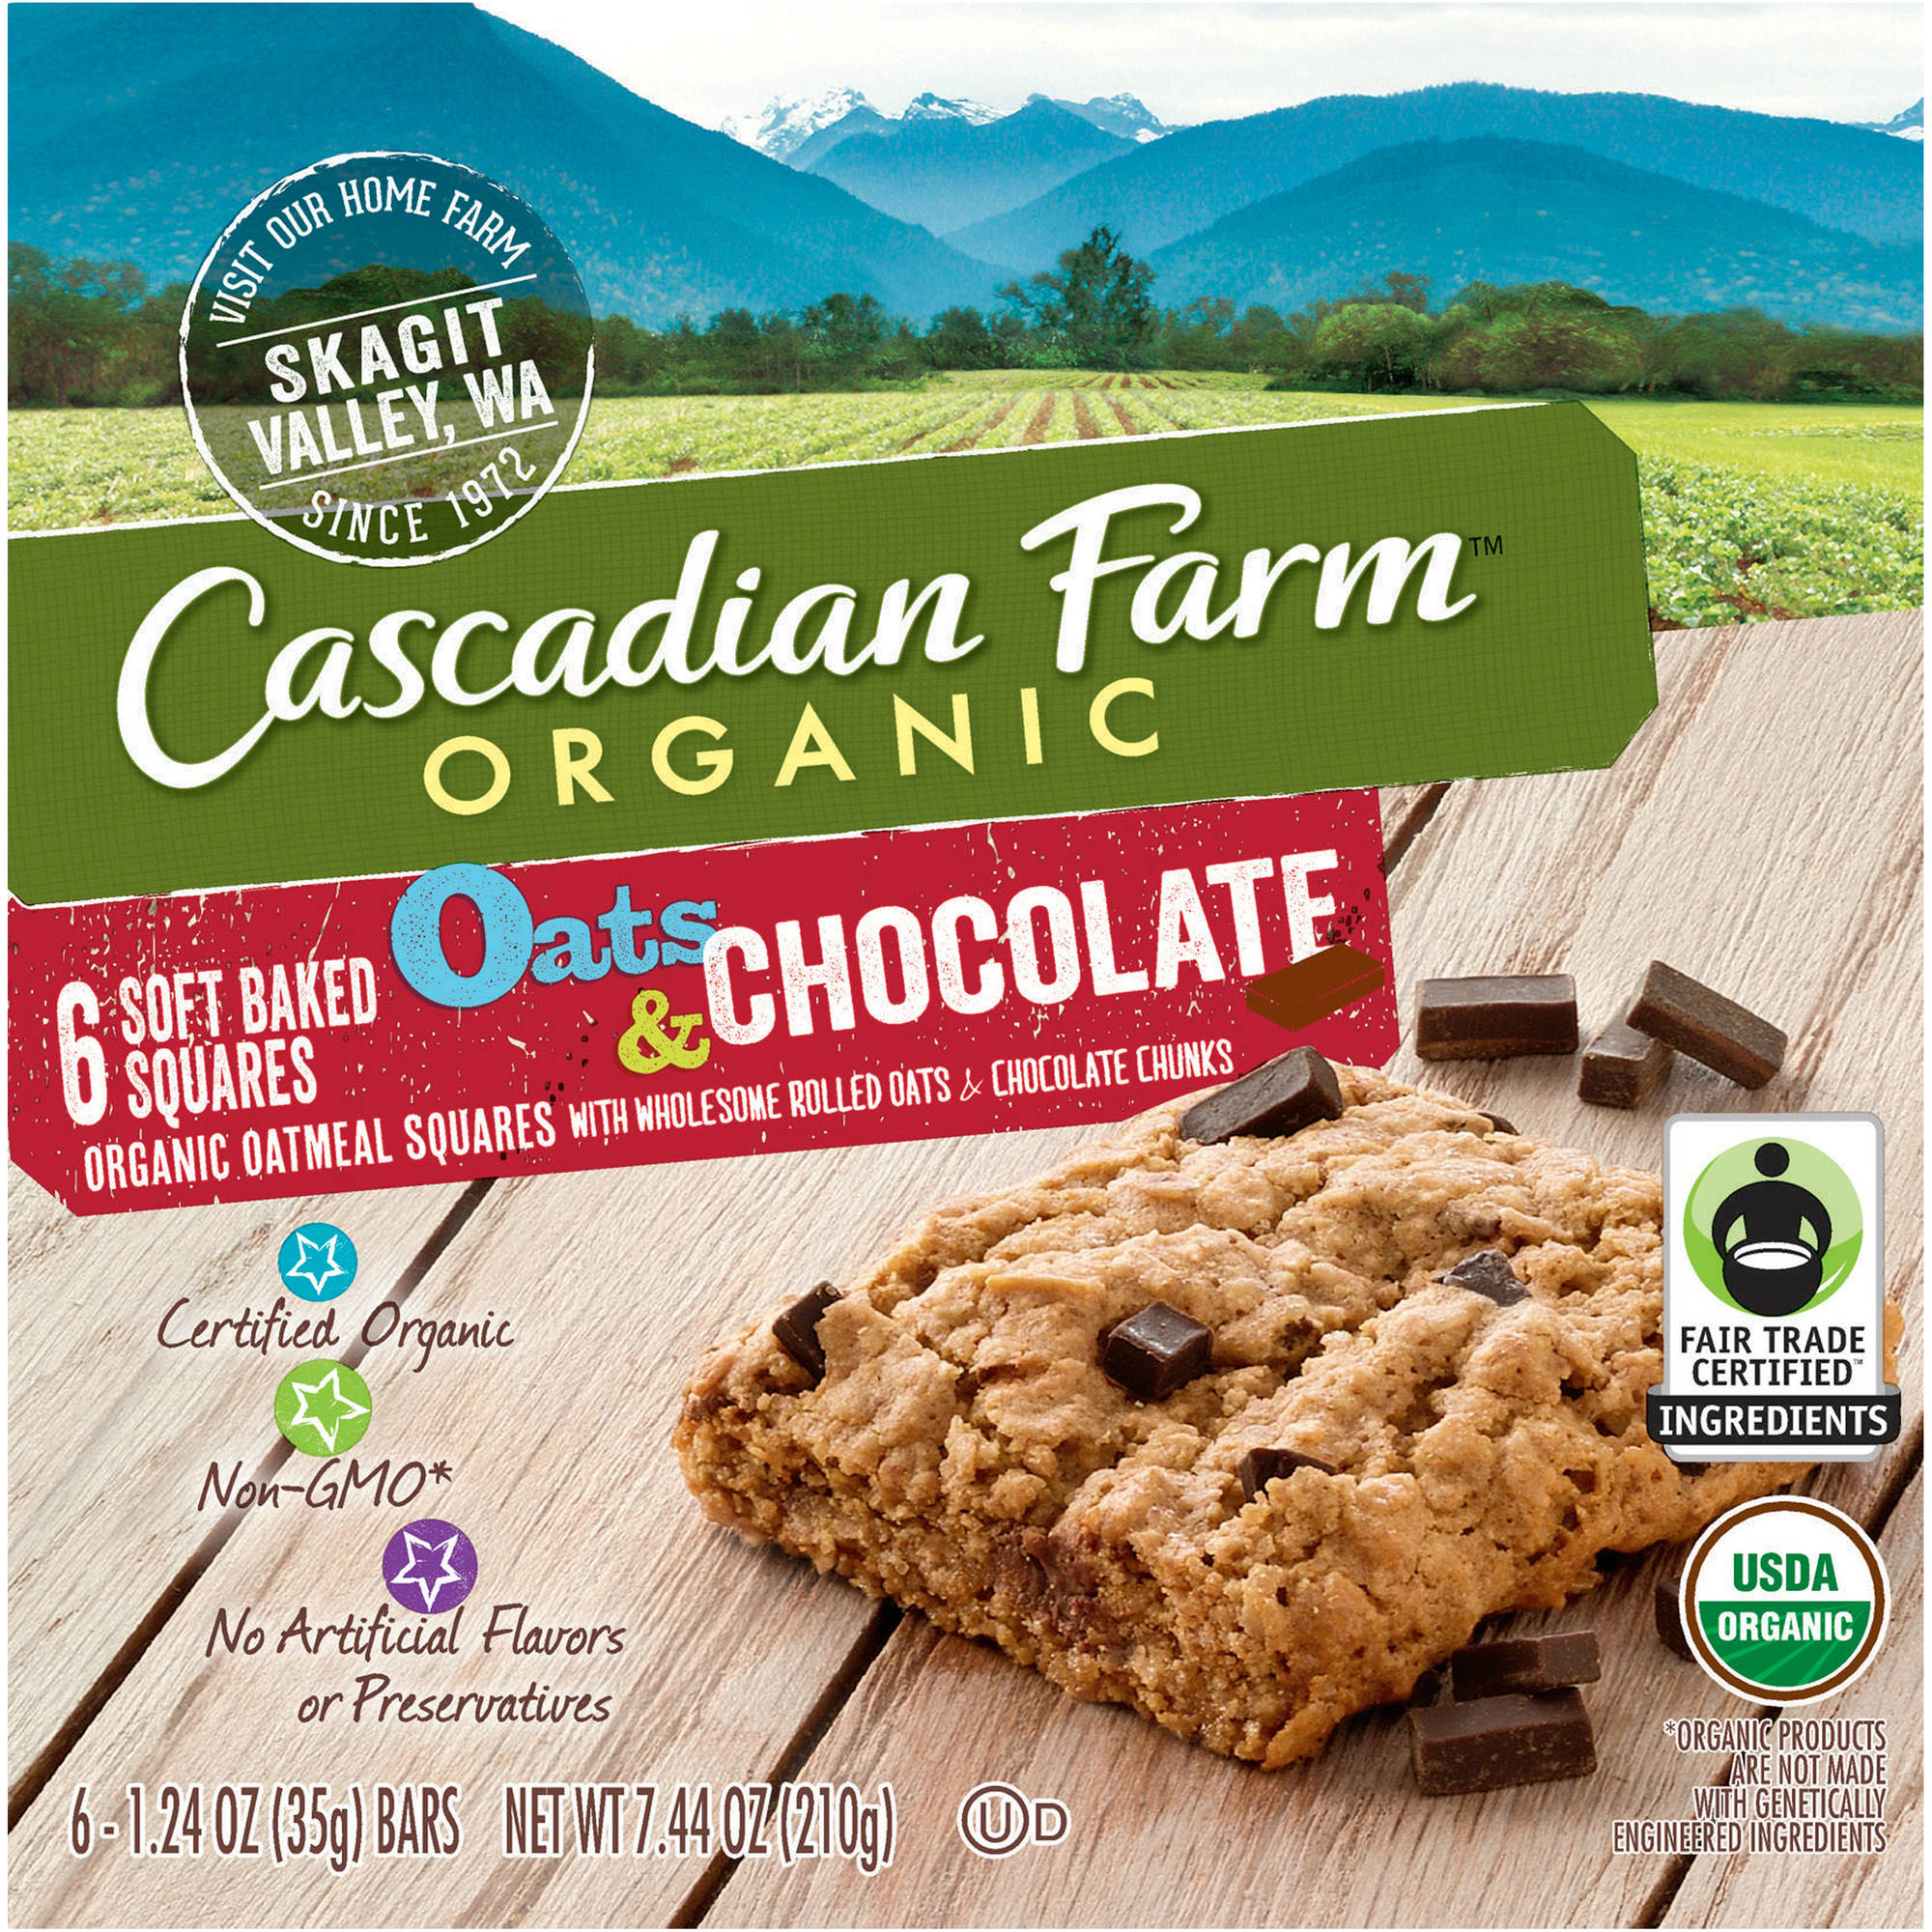 Cascadian Farm Organic Oats & Chocolate Soft Baked Squares, 1.24 oz, 6 count